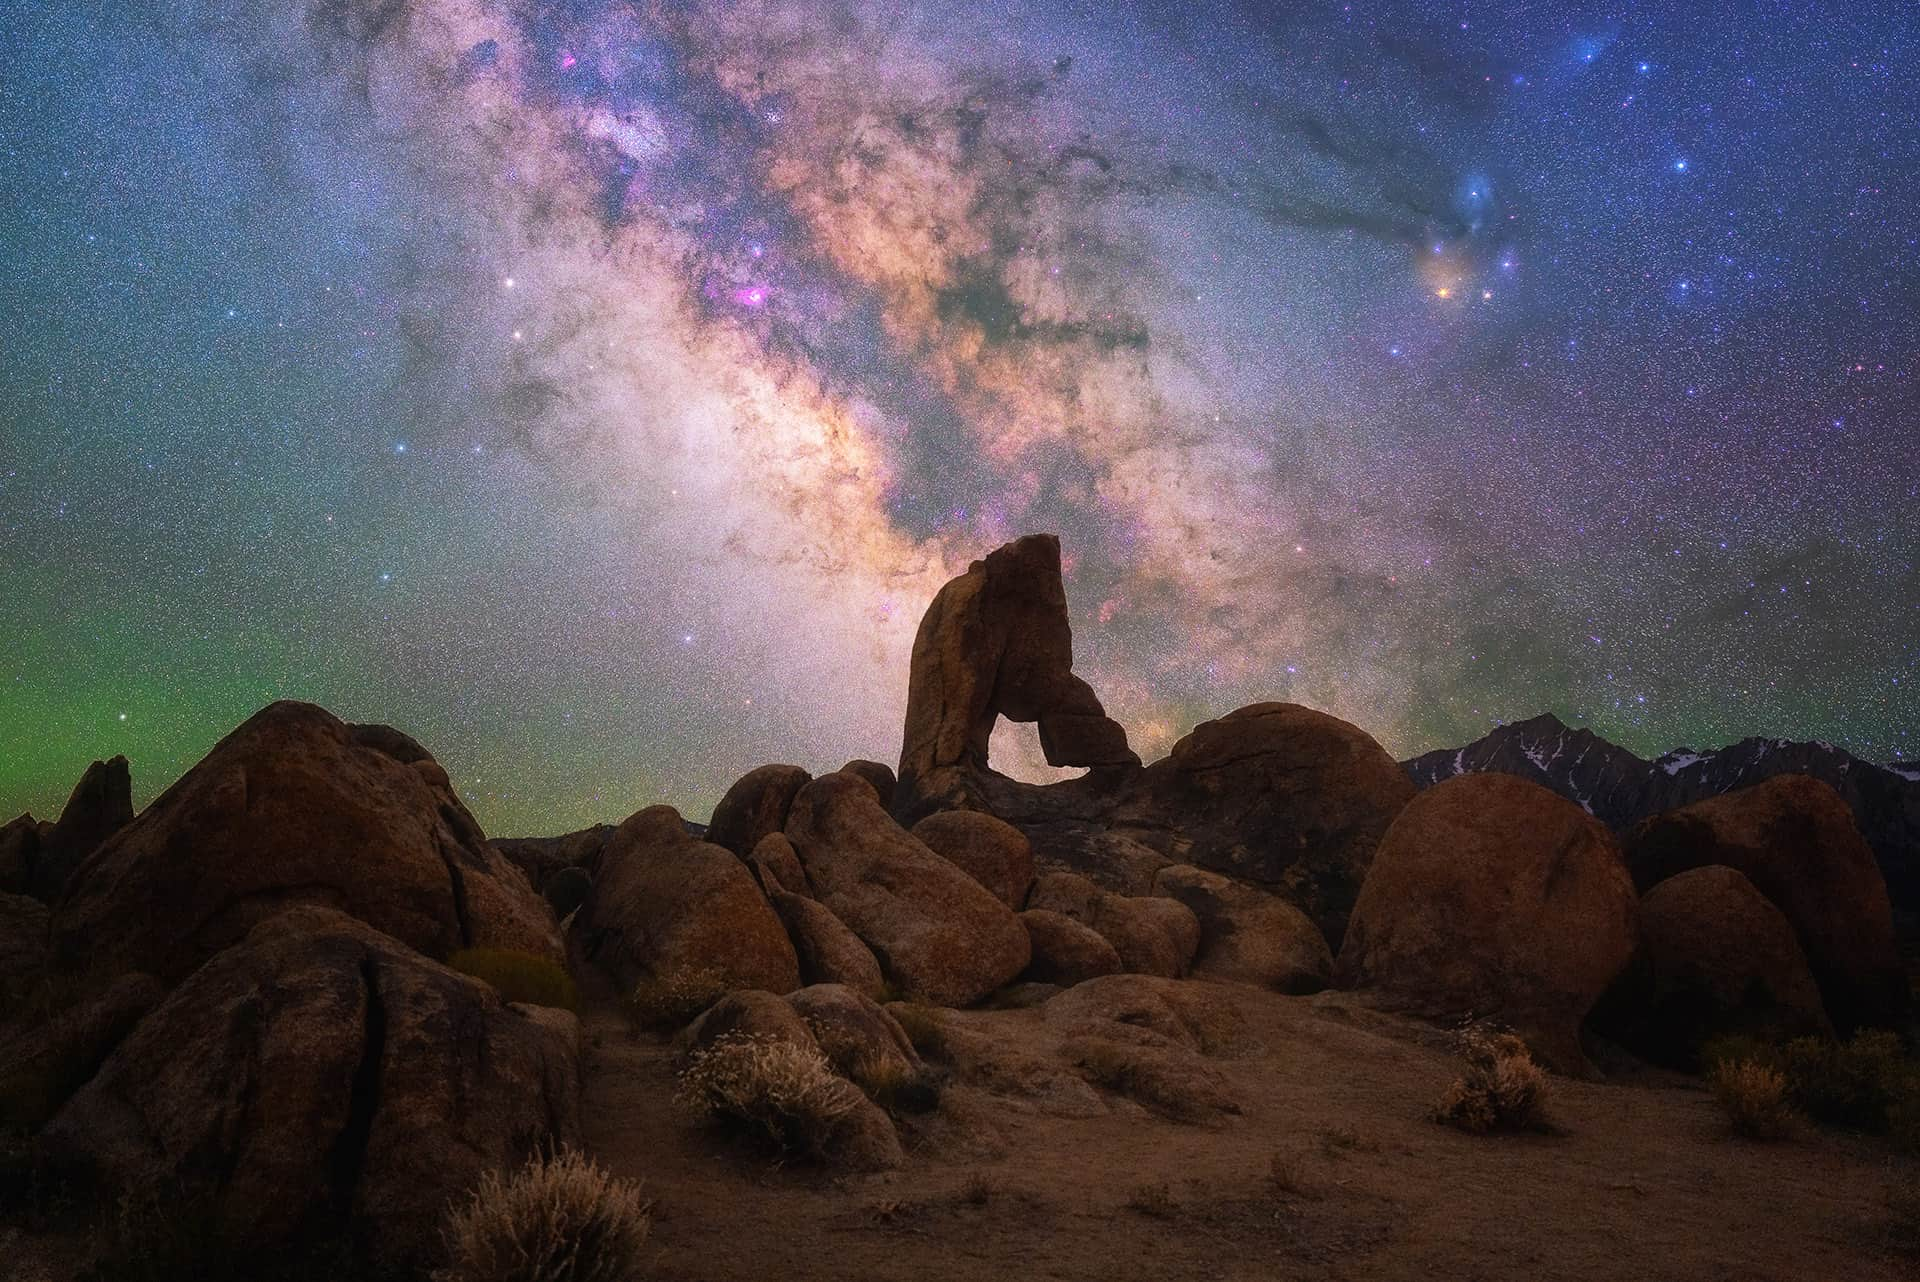 Best Milky Way images in USA